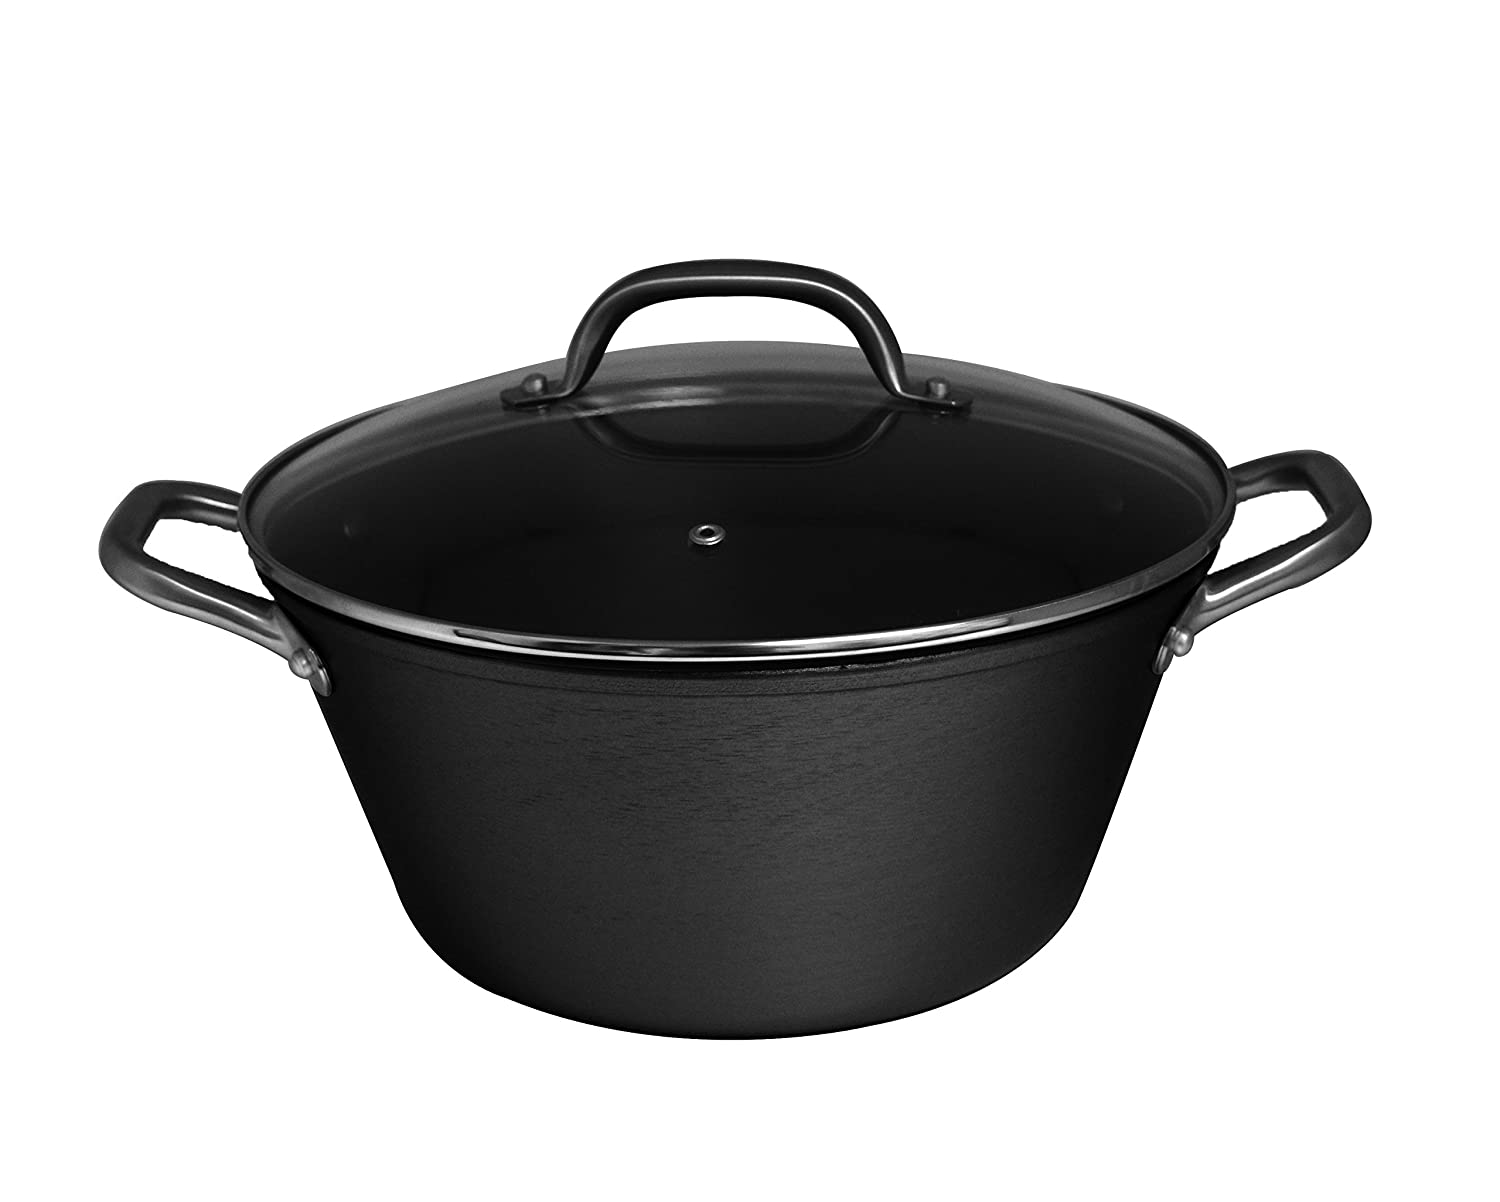 IMUSA USA LCI-19009 Light Cast Iron Dutch Oven with Stainless Steel Handle 6.2-Quart, Black